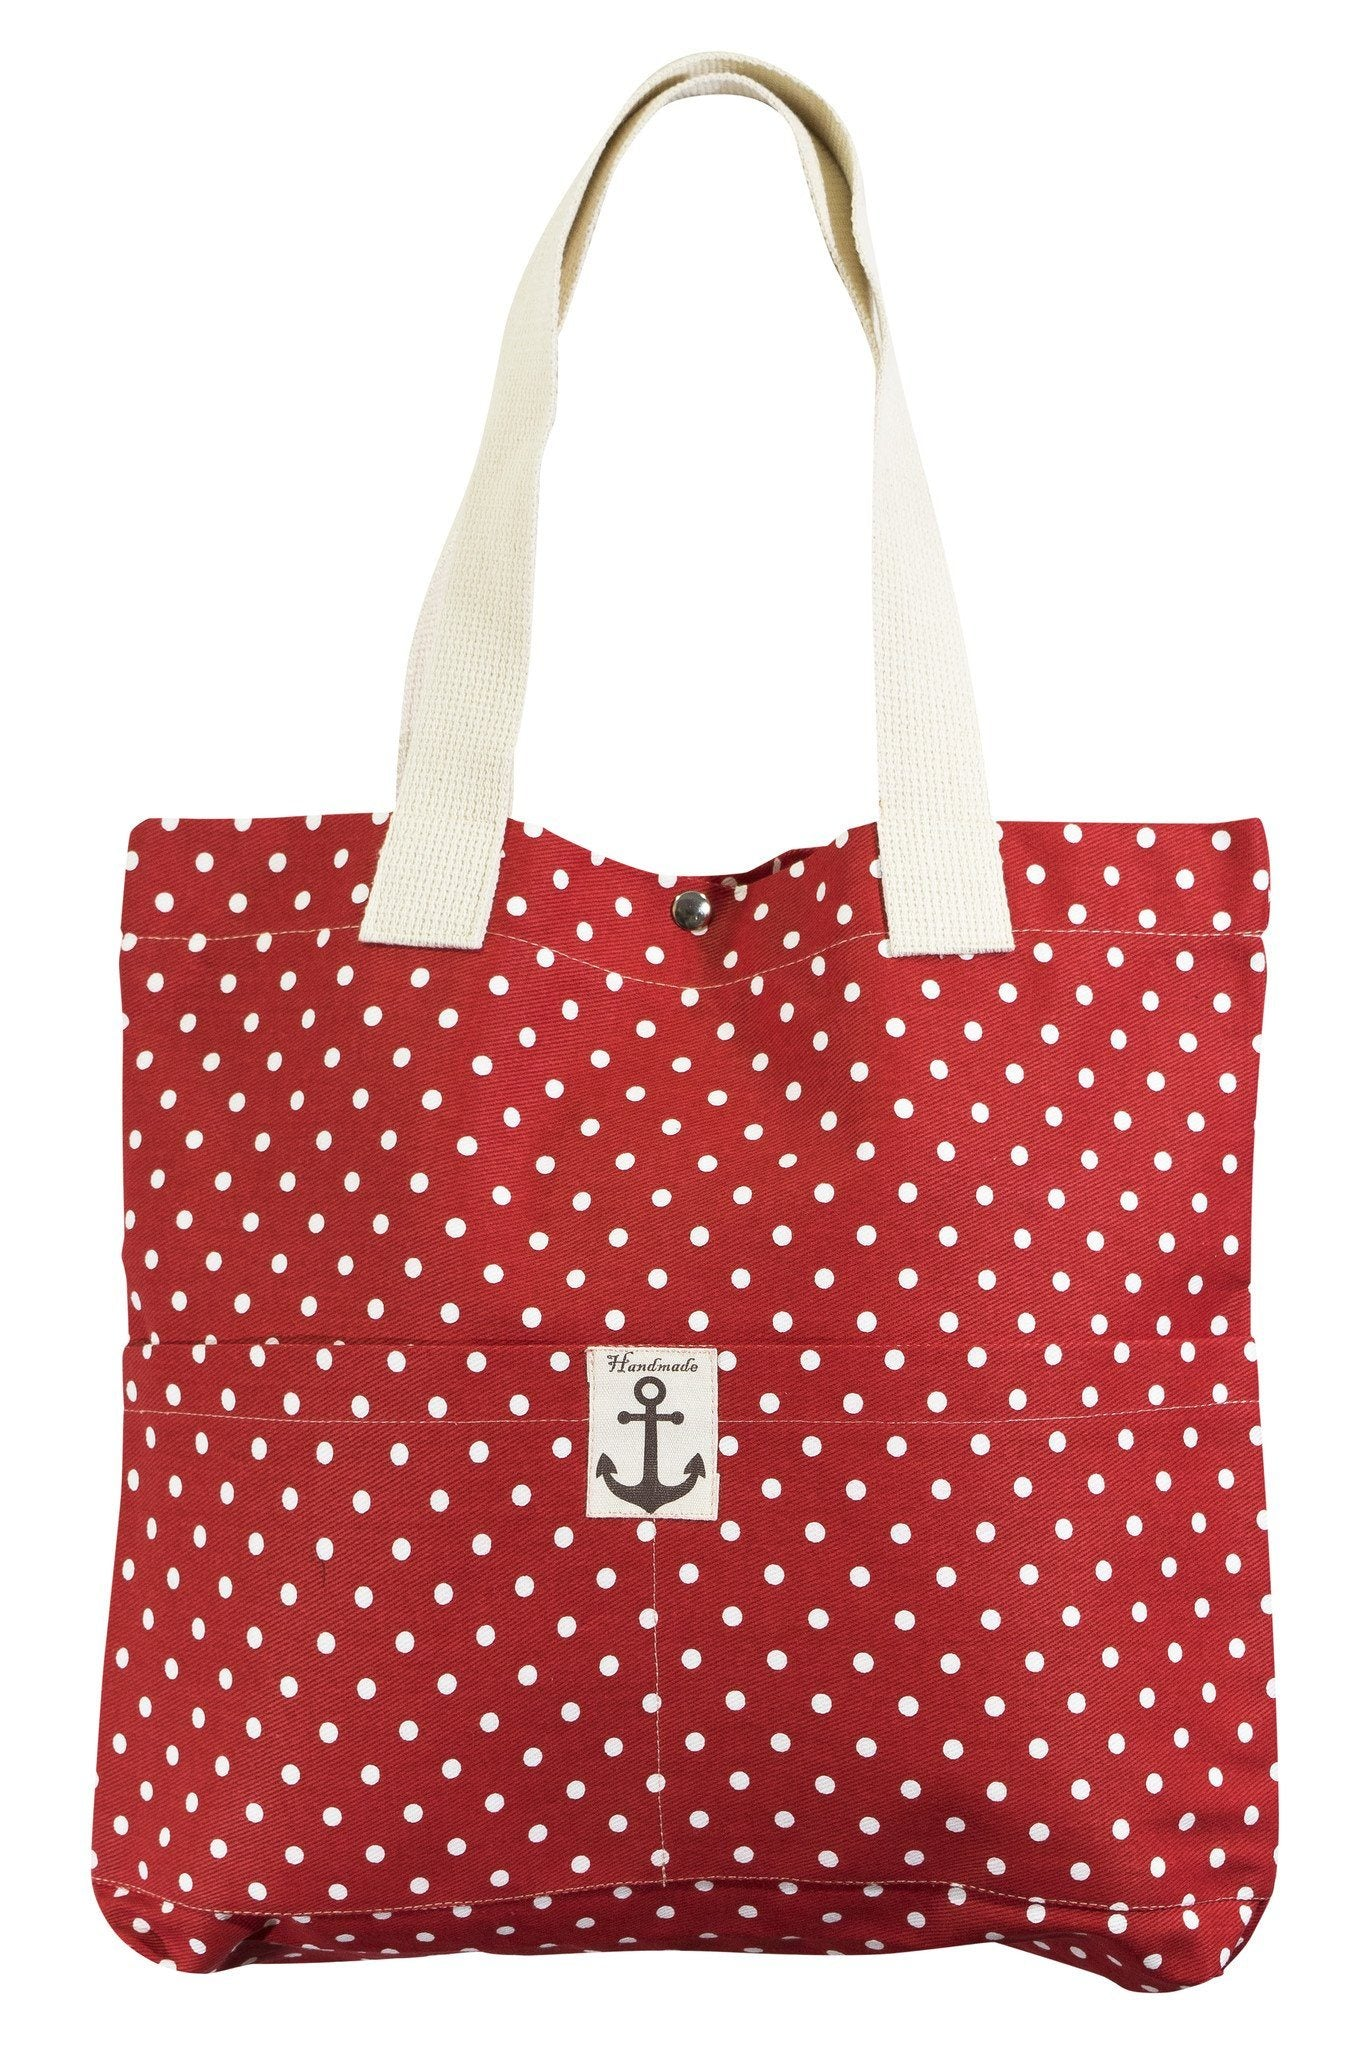 Mrs. Tote Shoulder bag Cotton Canvas Printed with Two front Pocket - CCCollections